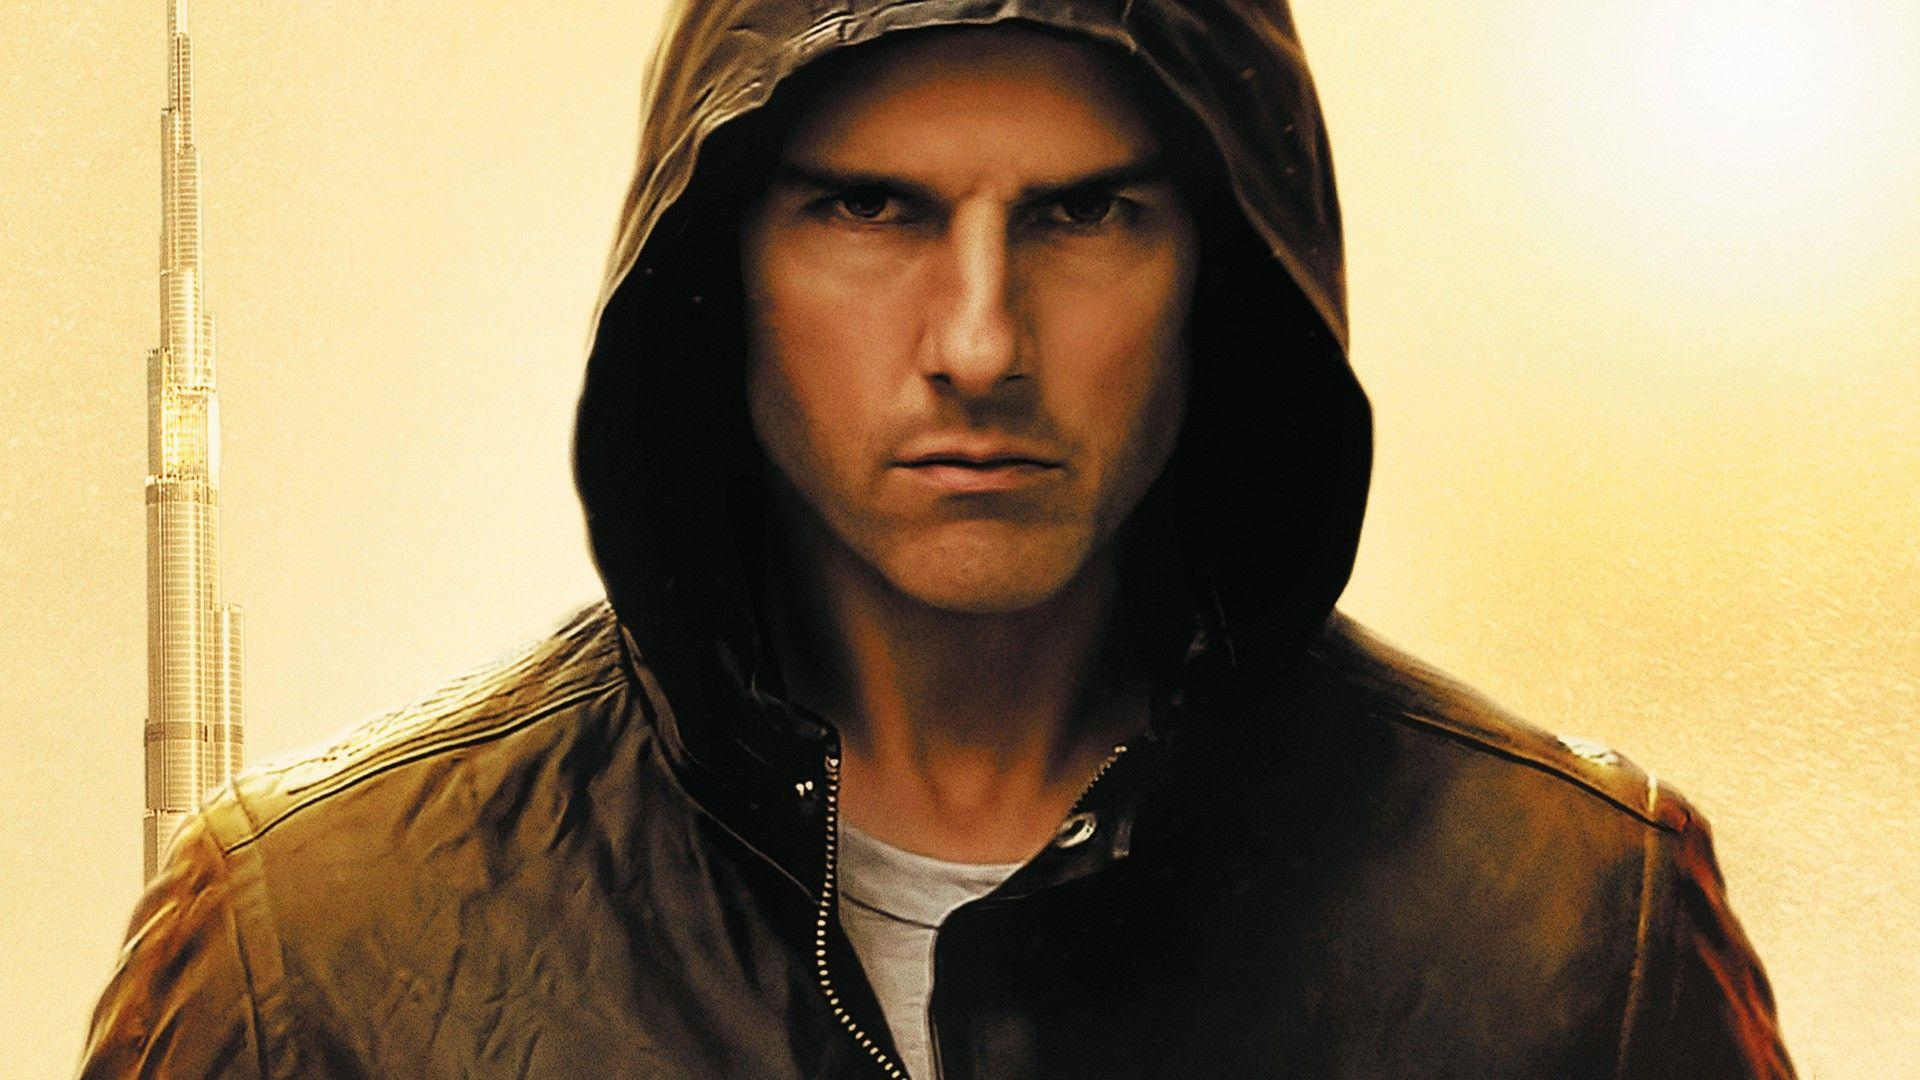 Tom Cruise iPhone wallpapers